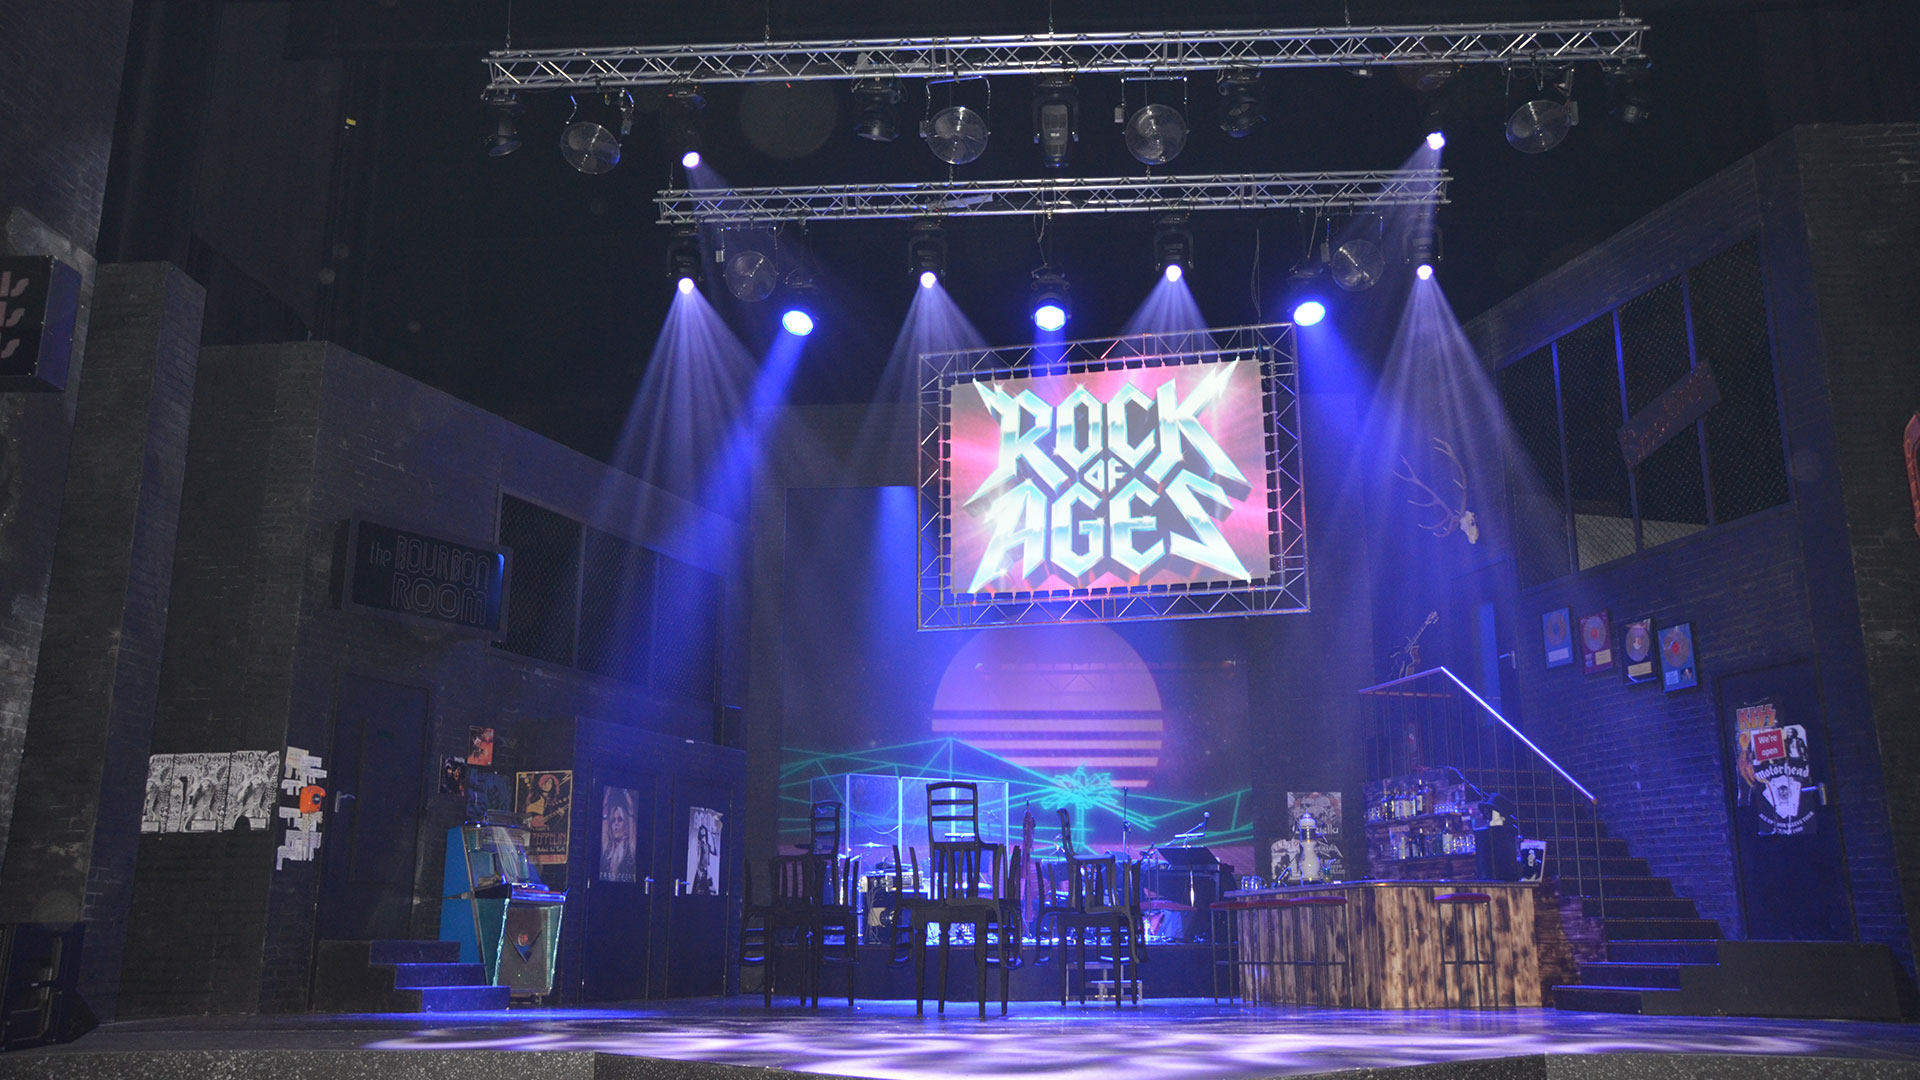 Theater-Ulm_Rock_of_Ages_P18_2.jpg